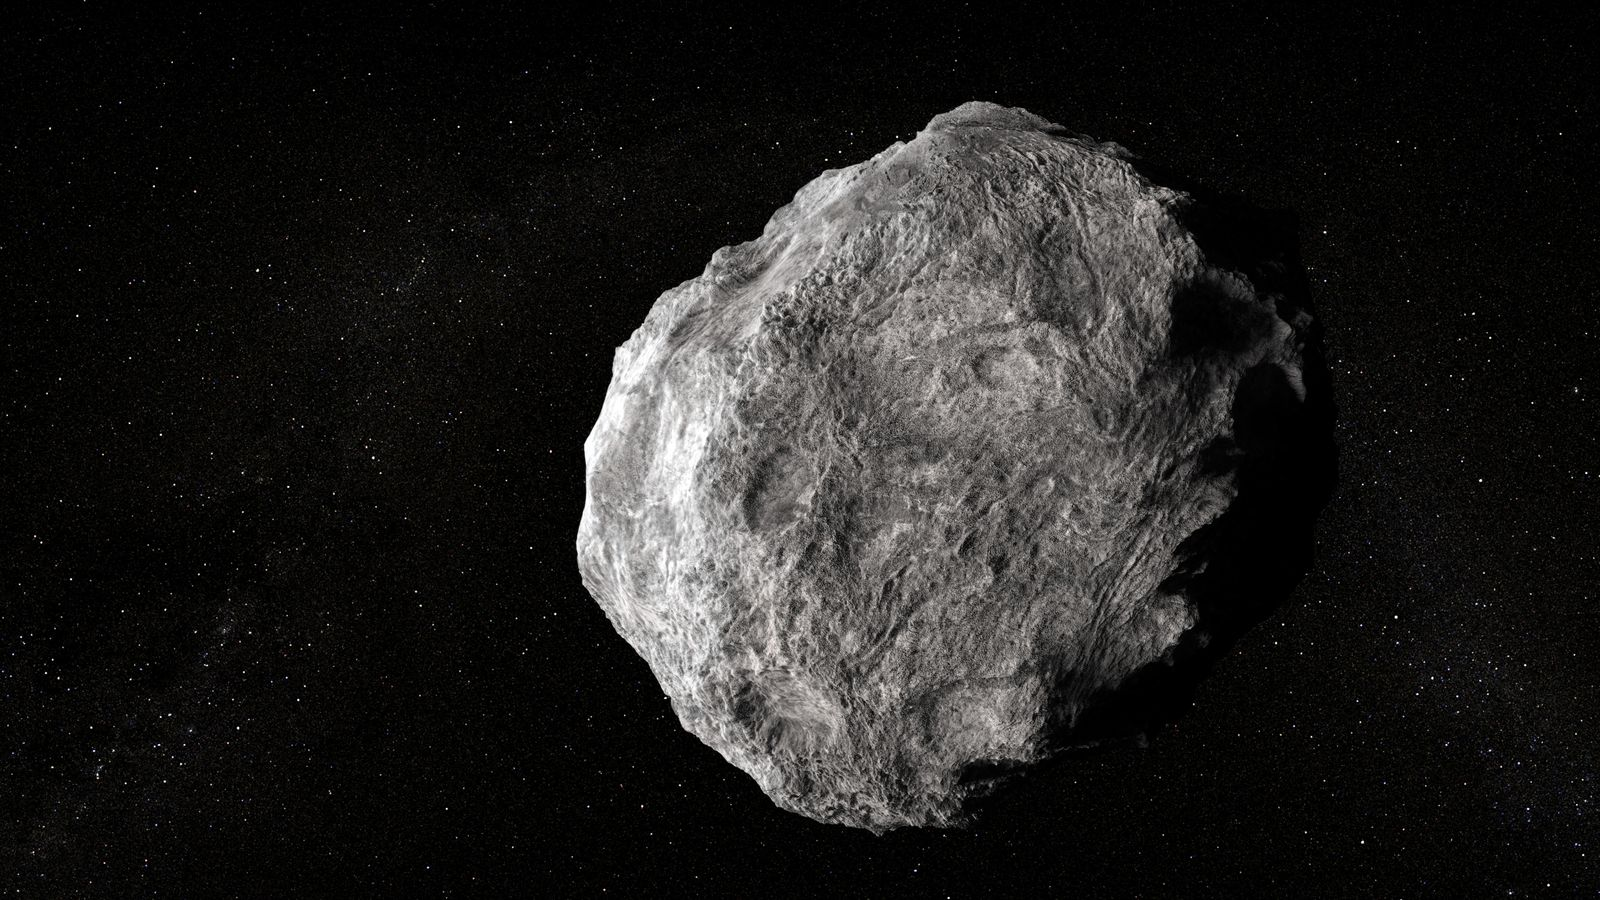 asteroid or comet weird blue space rock phaethon gets a - HD1600×900